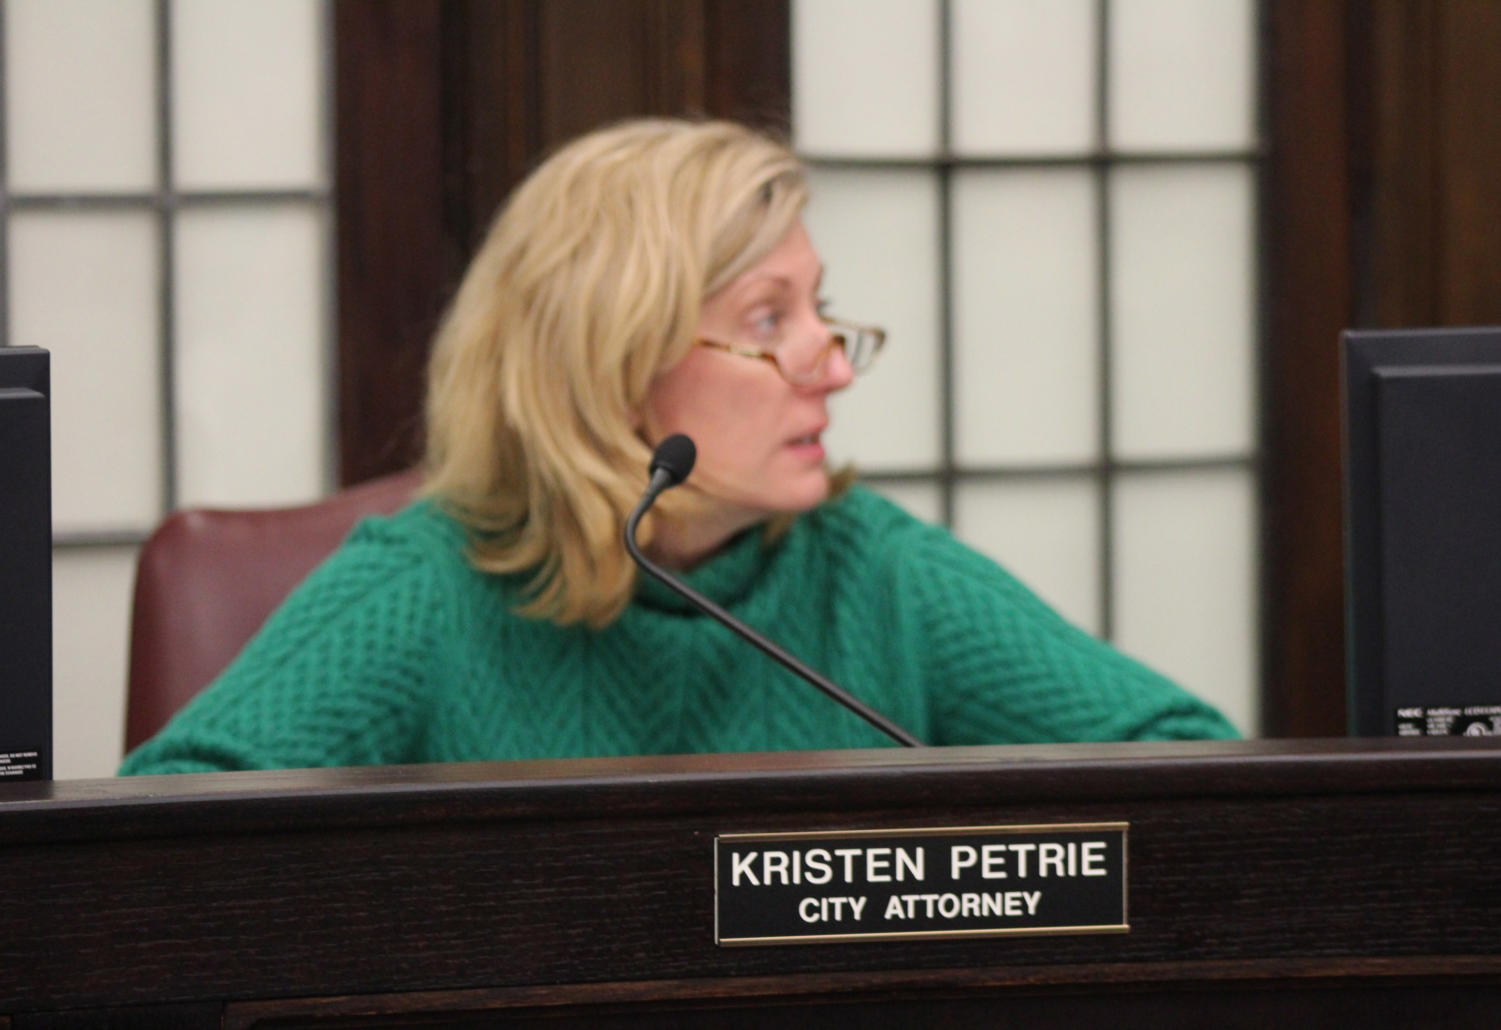 Alderman Don Wynn led Monday's meeting where City Attorney Kristen Petrie and City Administrator Dean Torreson discussed the budget and liquor licenses.